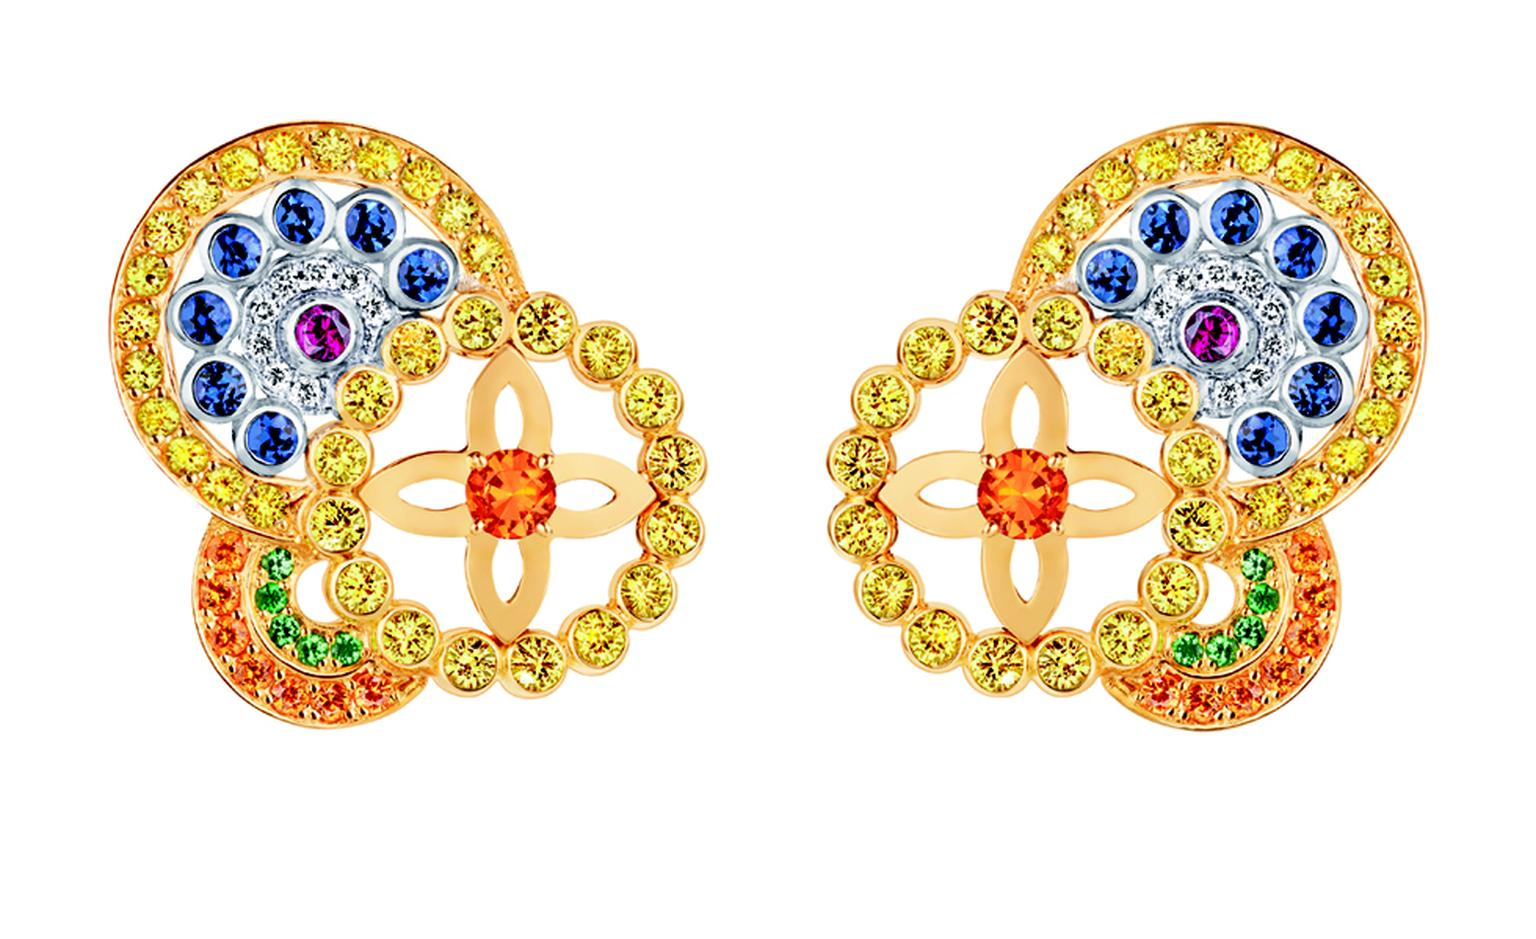 LOUIS VUITTON, Ornament Tribal Earrings, yellow gold, blue, yellow and pink sapphires, spessartite and tsavorite garnets and diamonds. £10,200